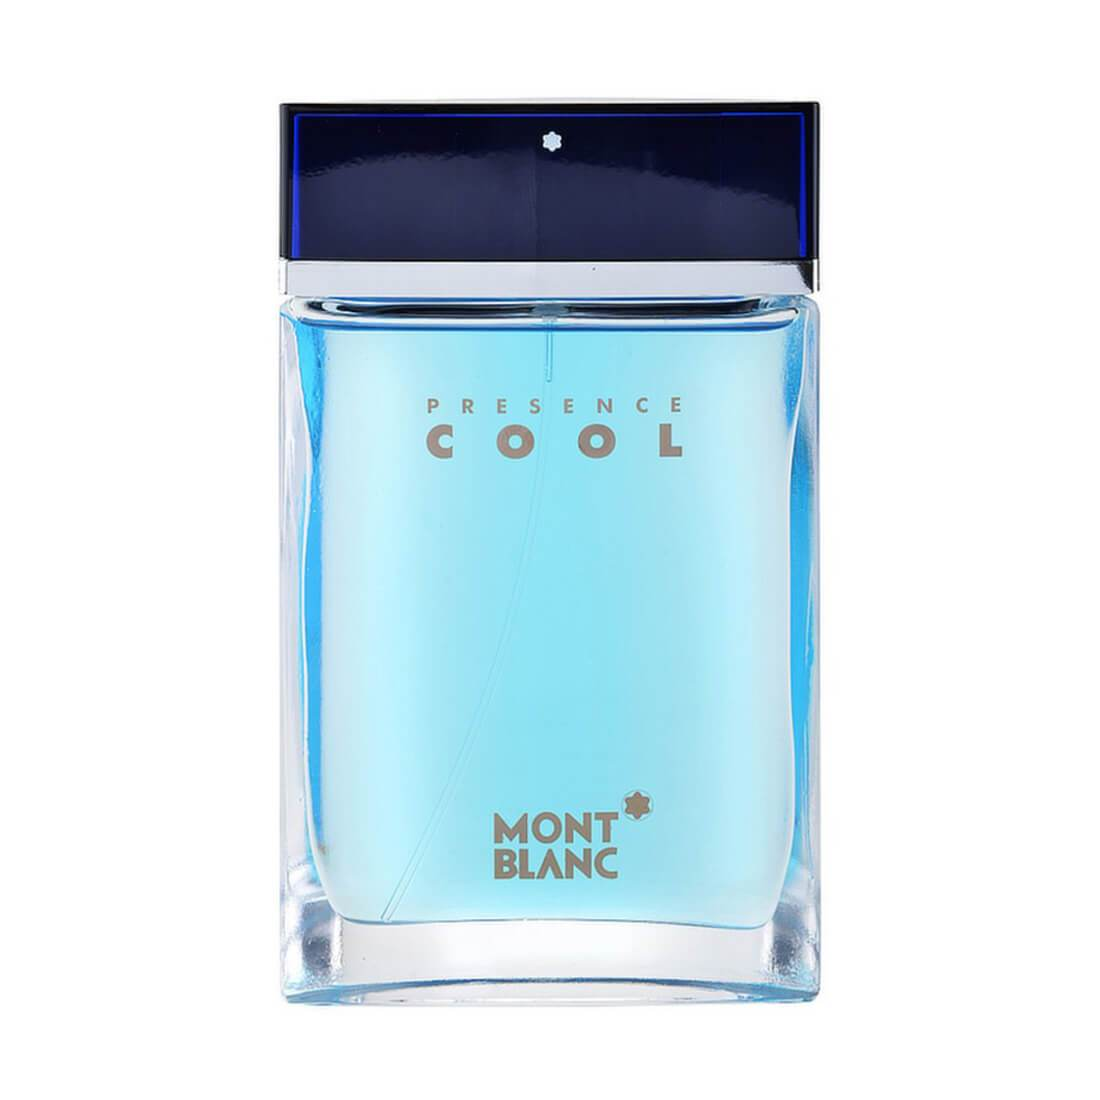 Mont Blanc Presence Cool Eau de Toilette For Men - 75ml